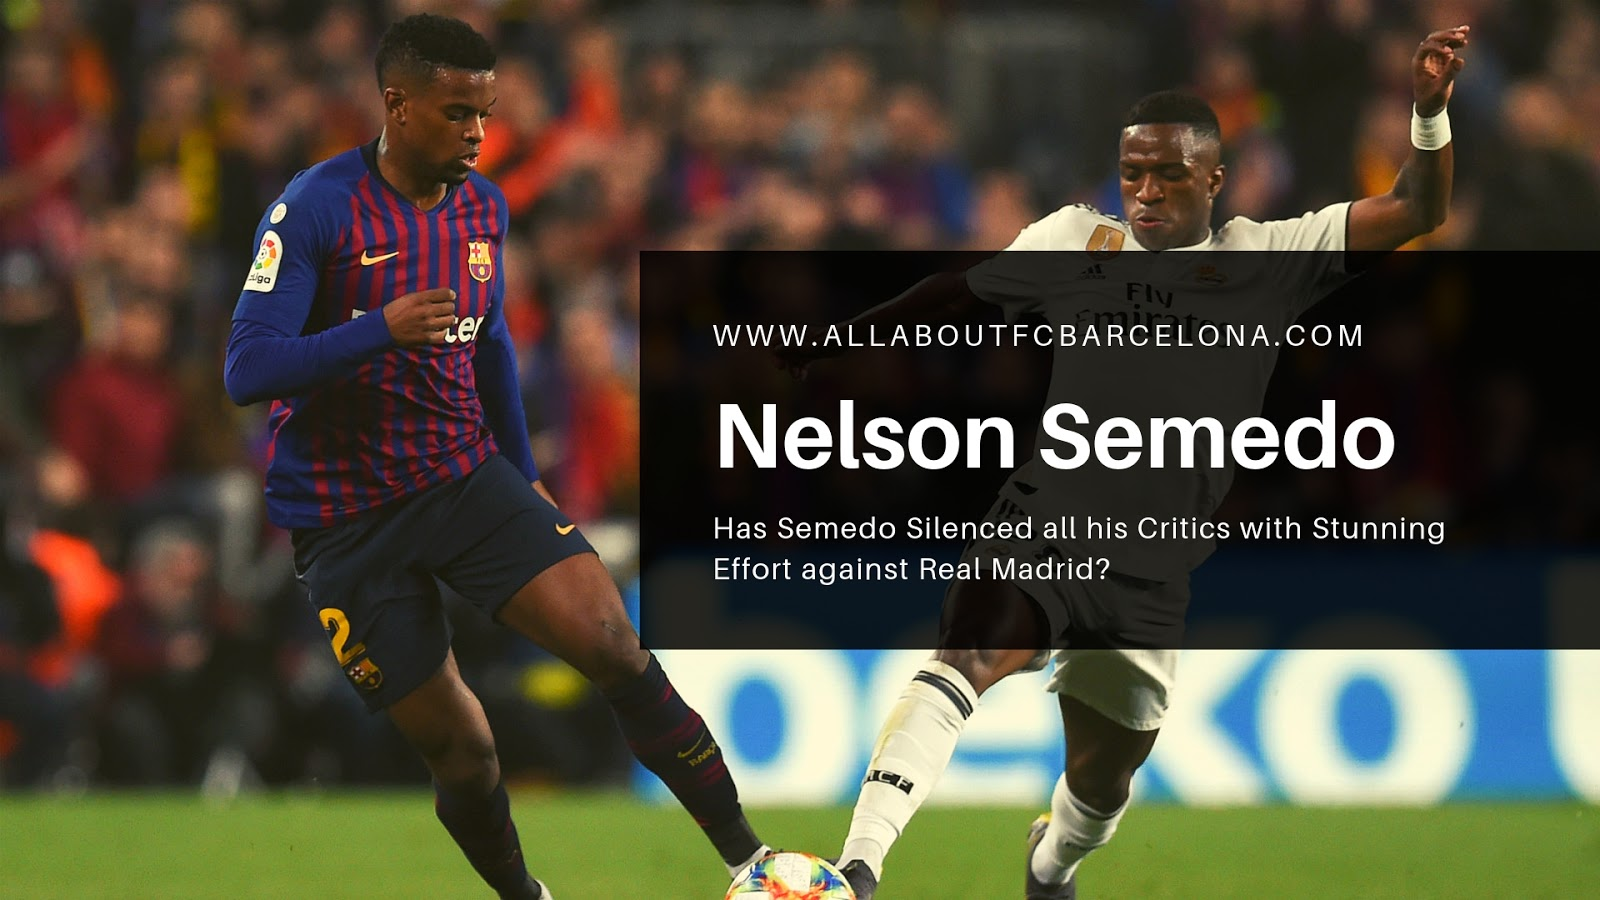 Has Semedo Silenced all his Critics with Stunning Effort against Real? #NelsonSemedo #Barca